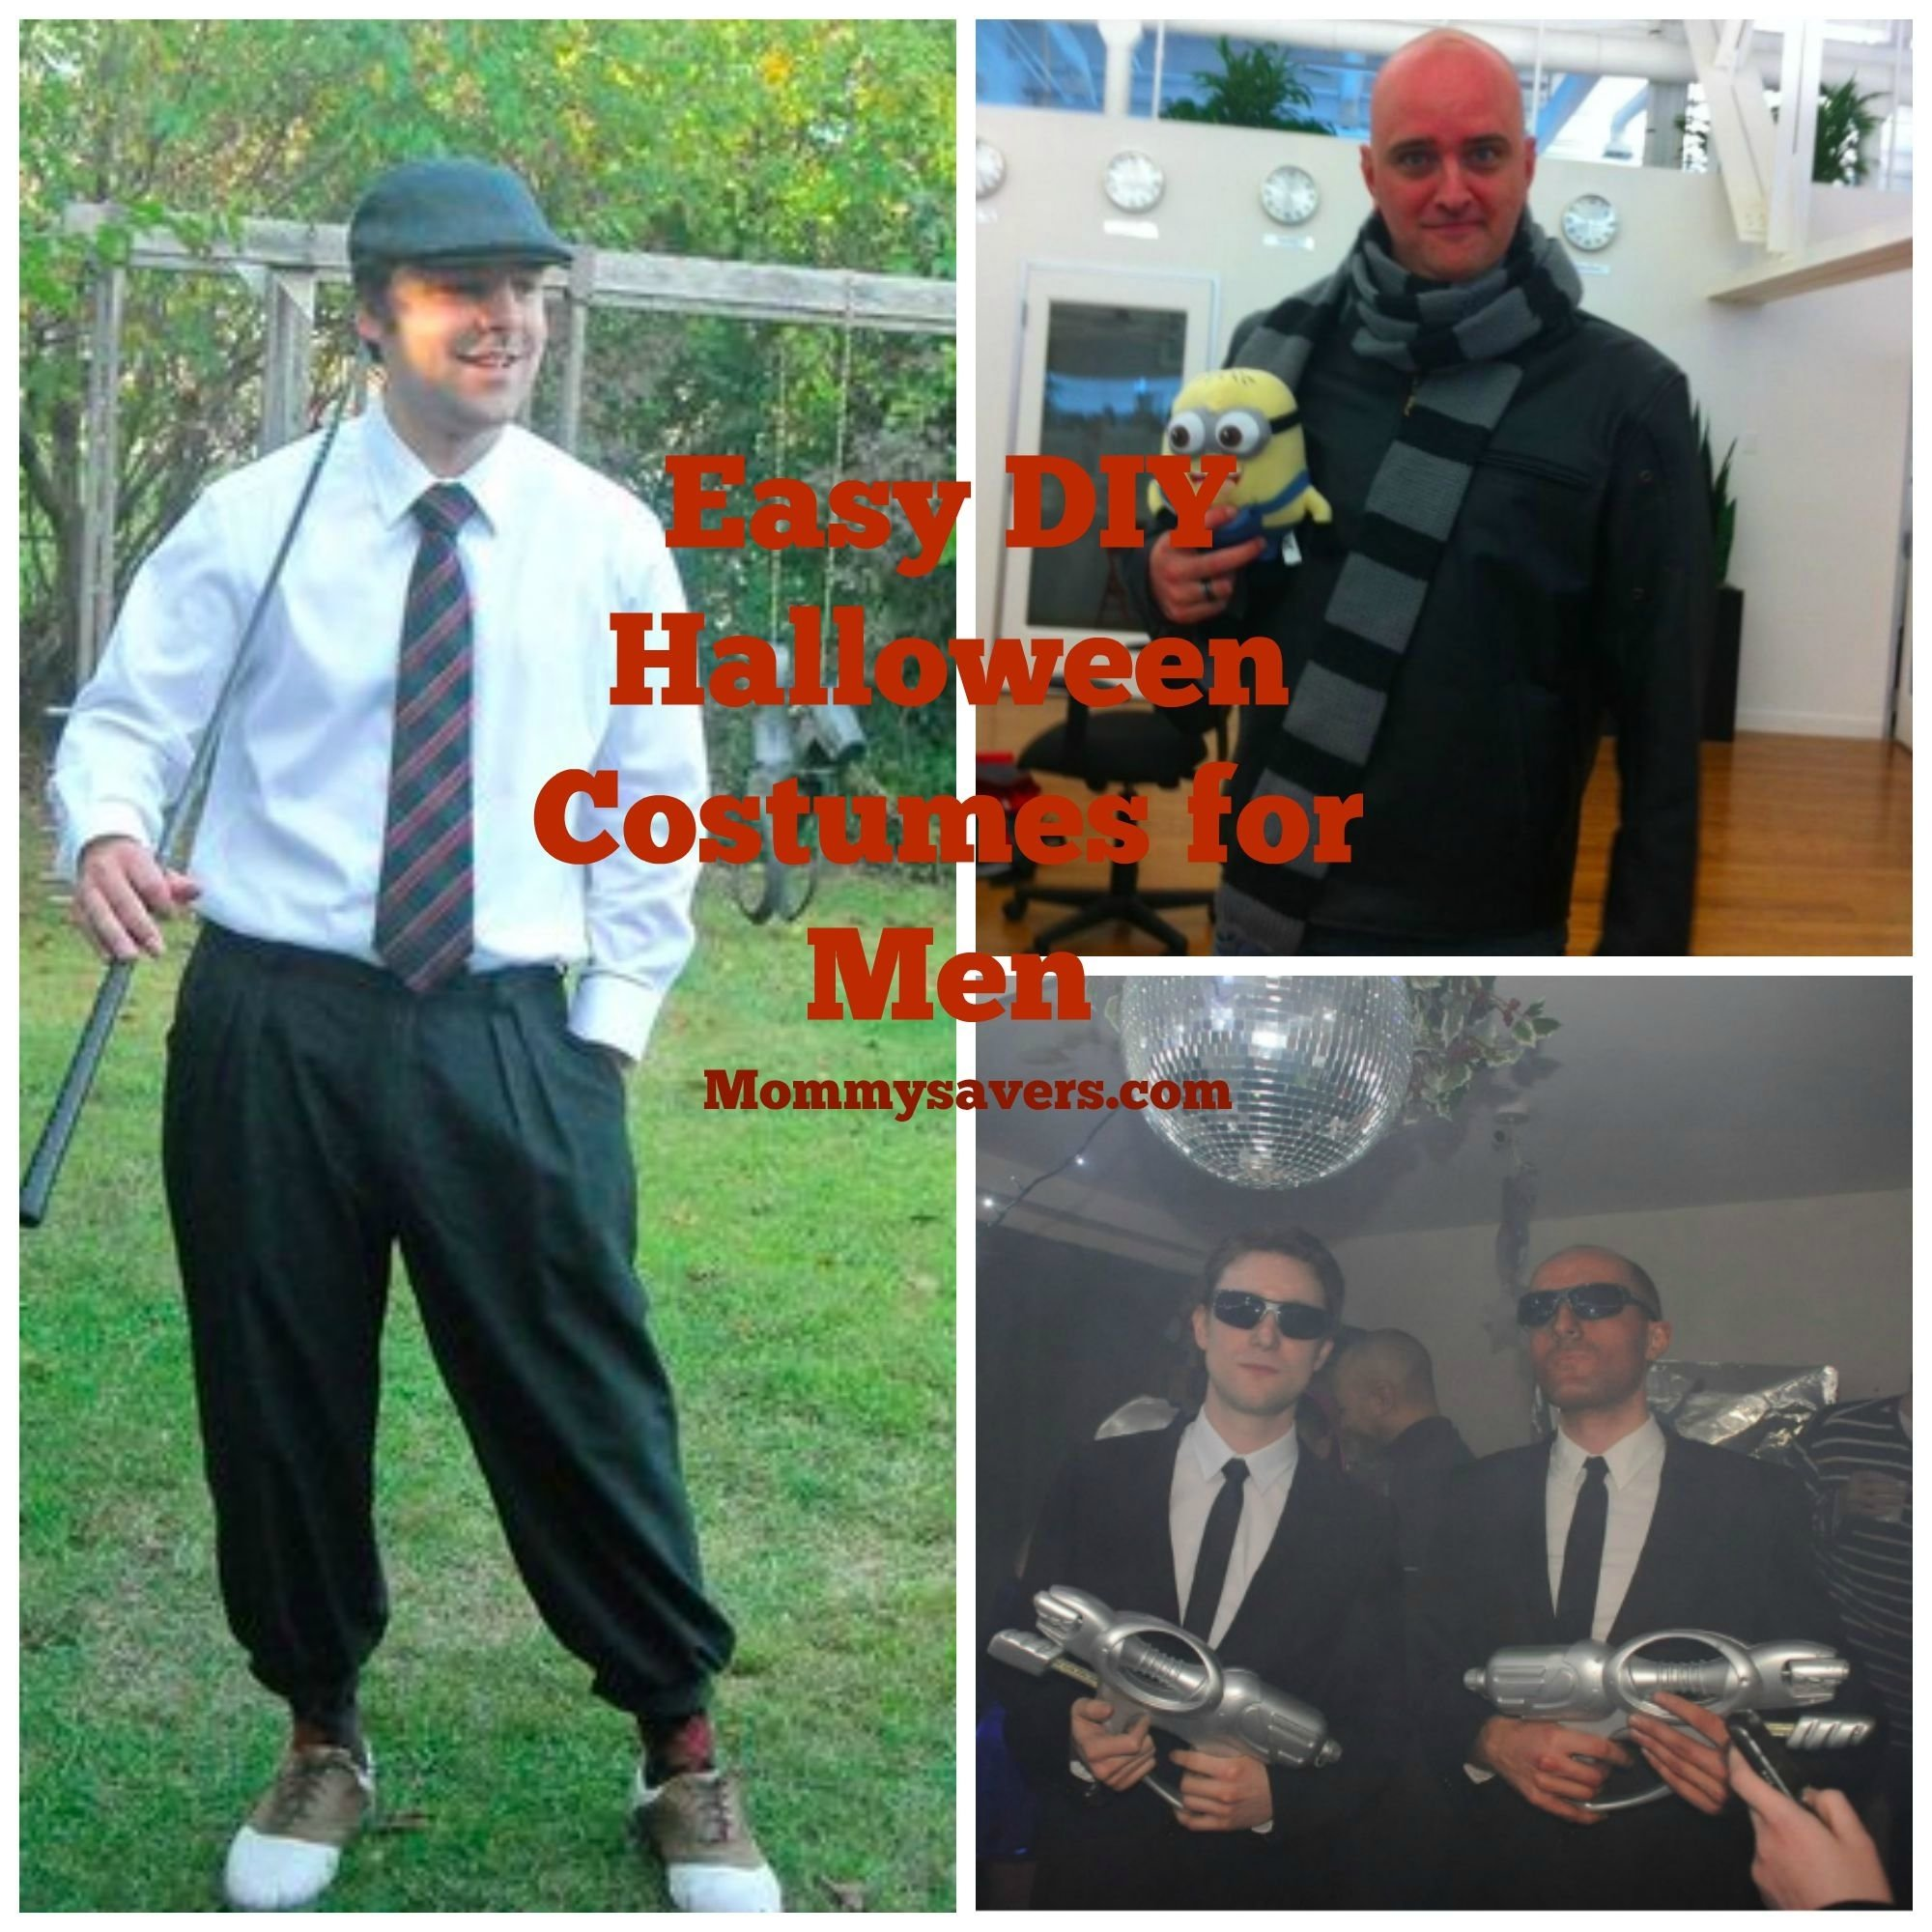 diy halloween costumes for men | mommysavers